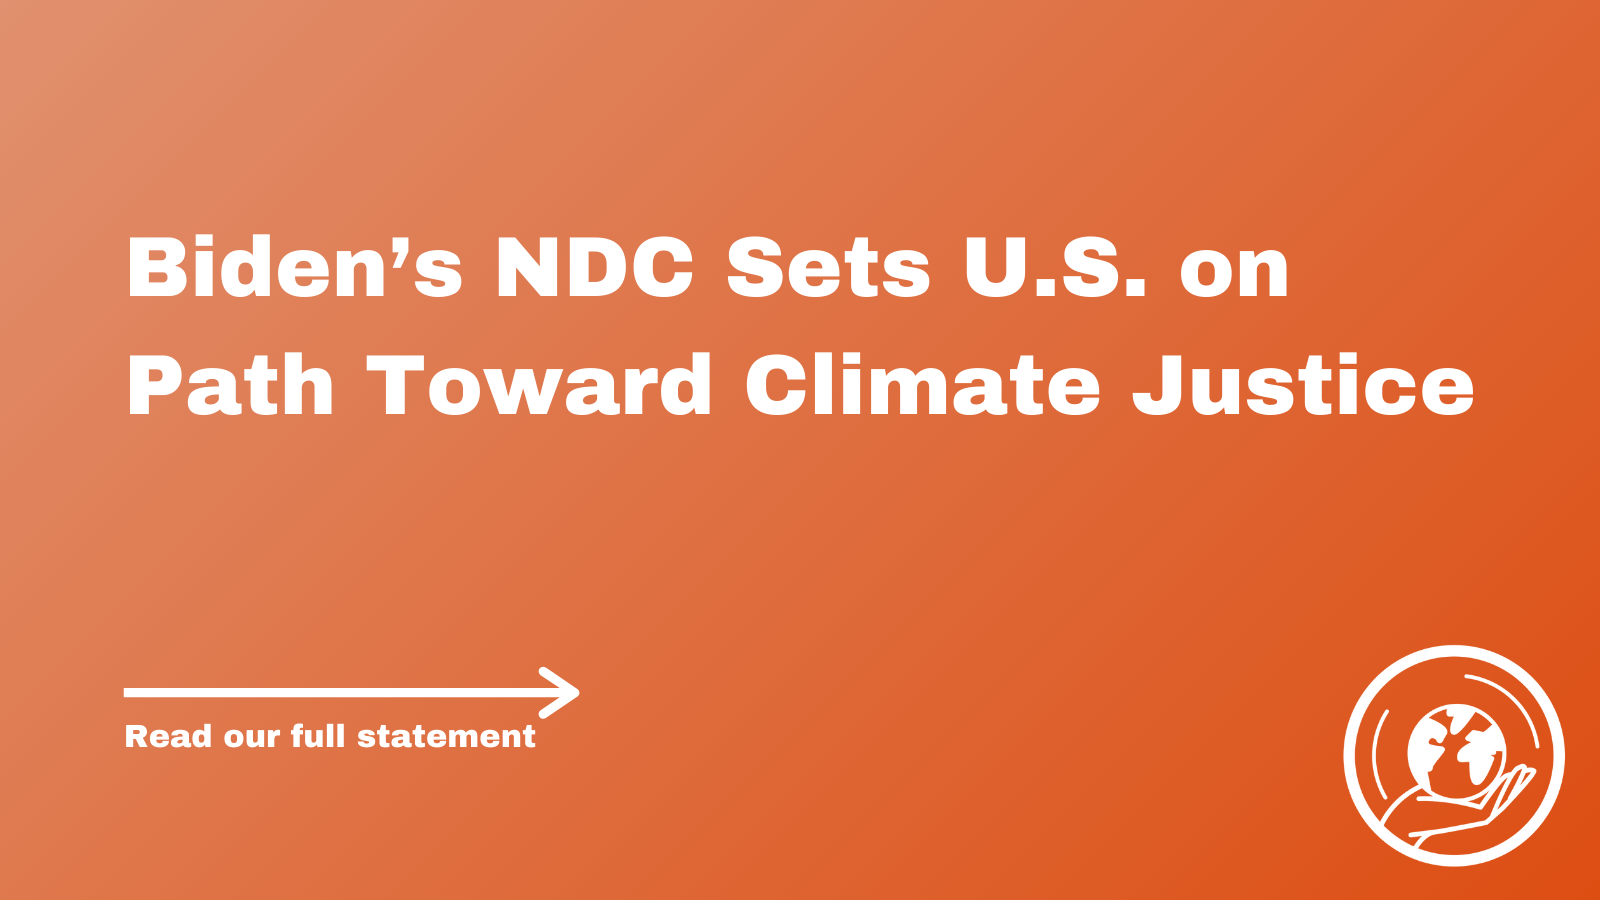 Biden's NDC Sets U.S. on Path Toward Climate Justice